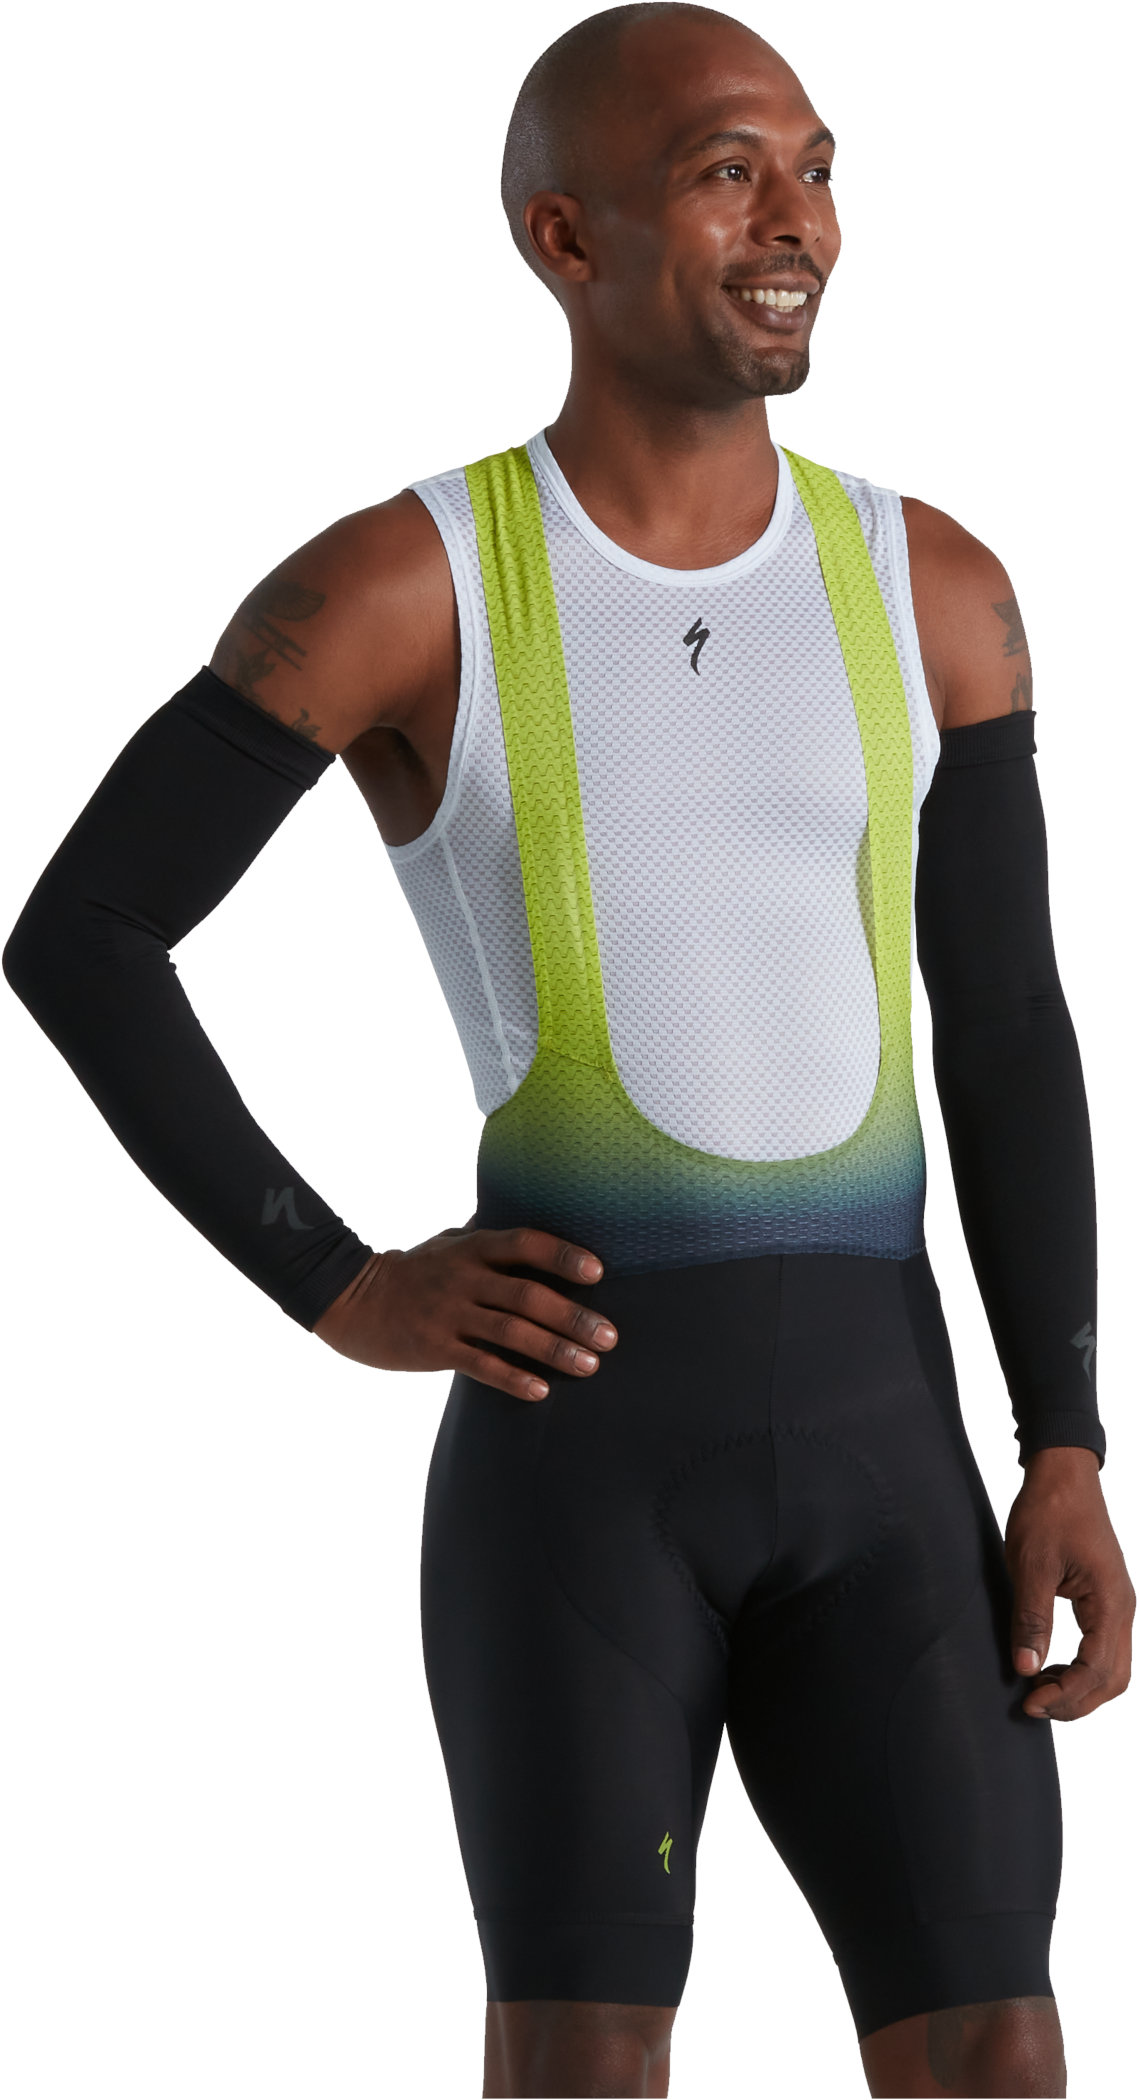 SPECIALIZED THERMINAL 2.0 Femme Arm Warmers Select Taille